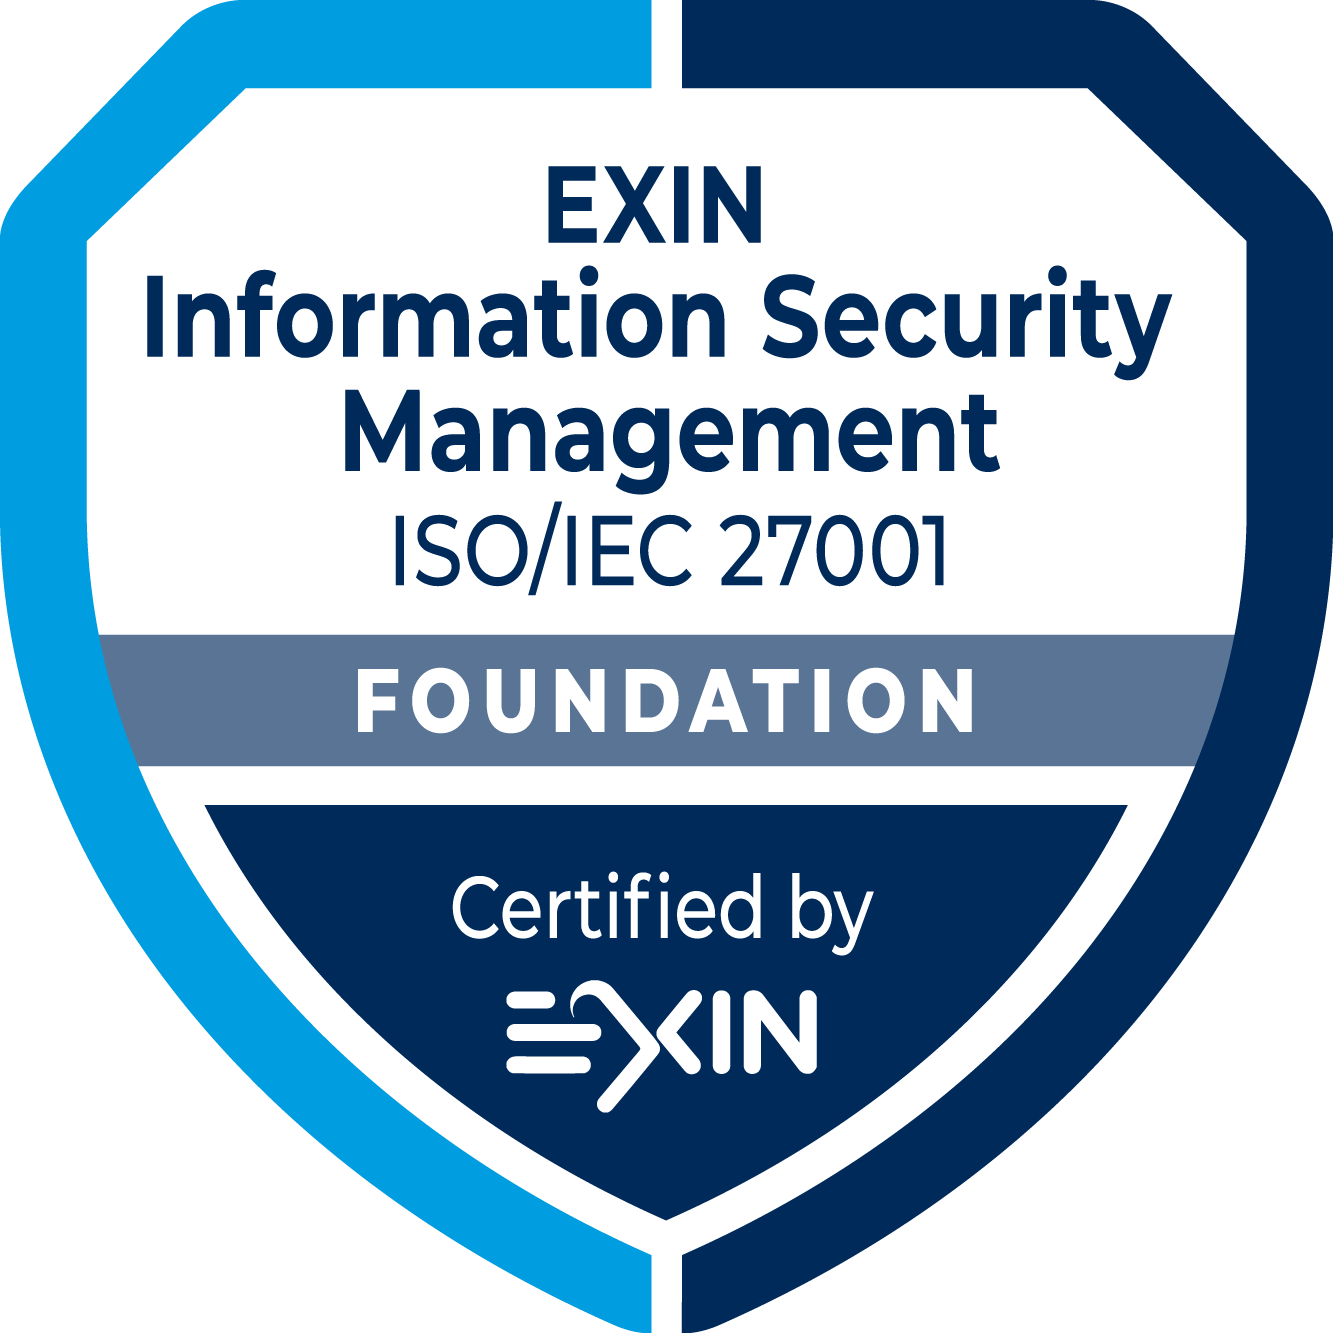 Information Security Foundation based on ISO IEC 27001